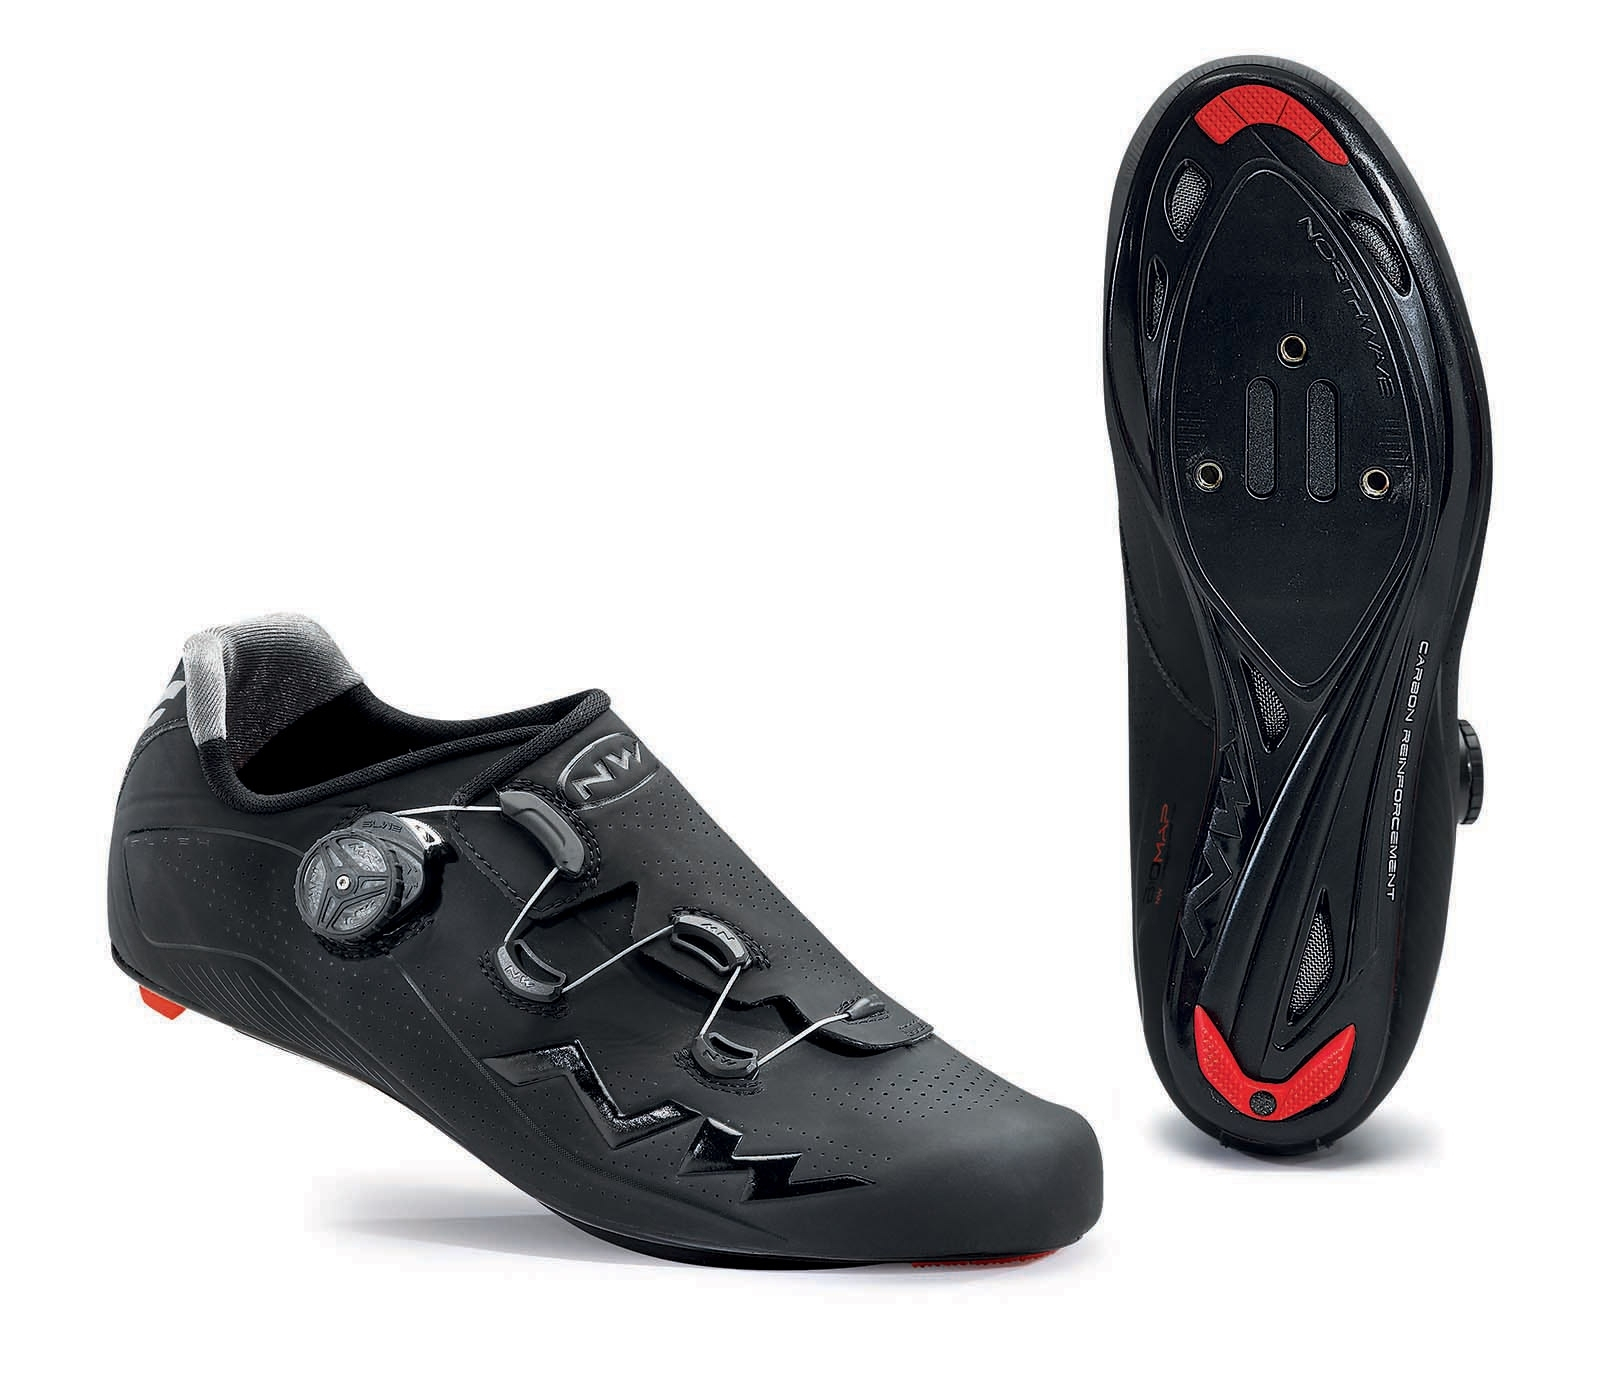 Best price Northwave Man road shoes FLASH | Italy2us.com